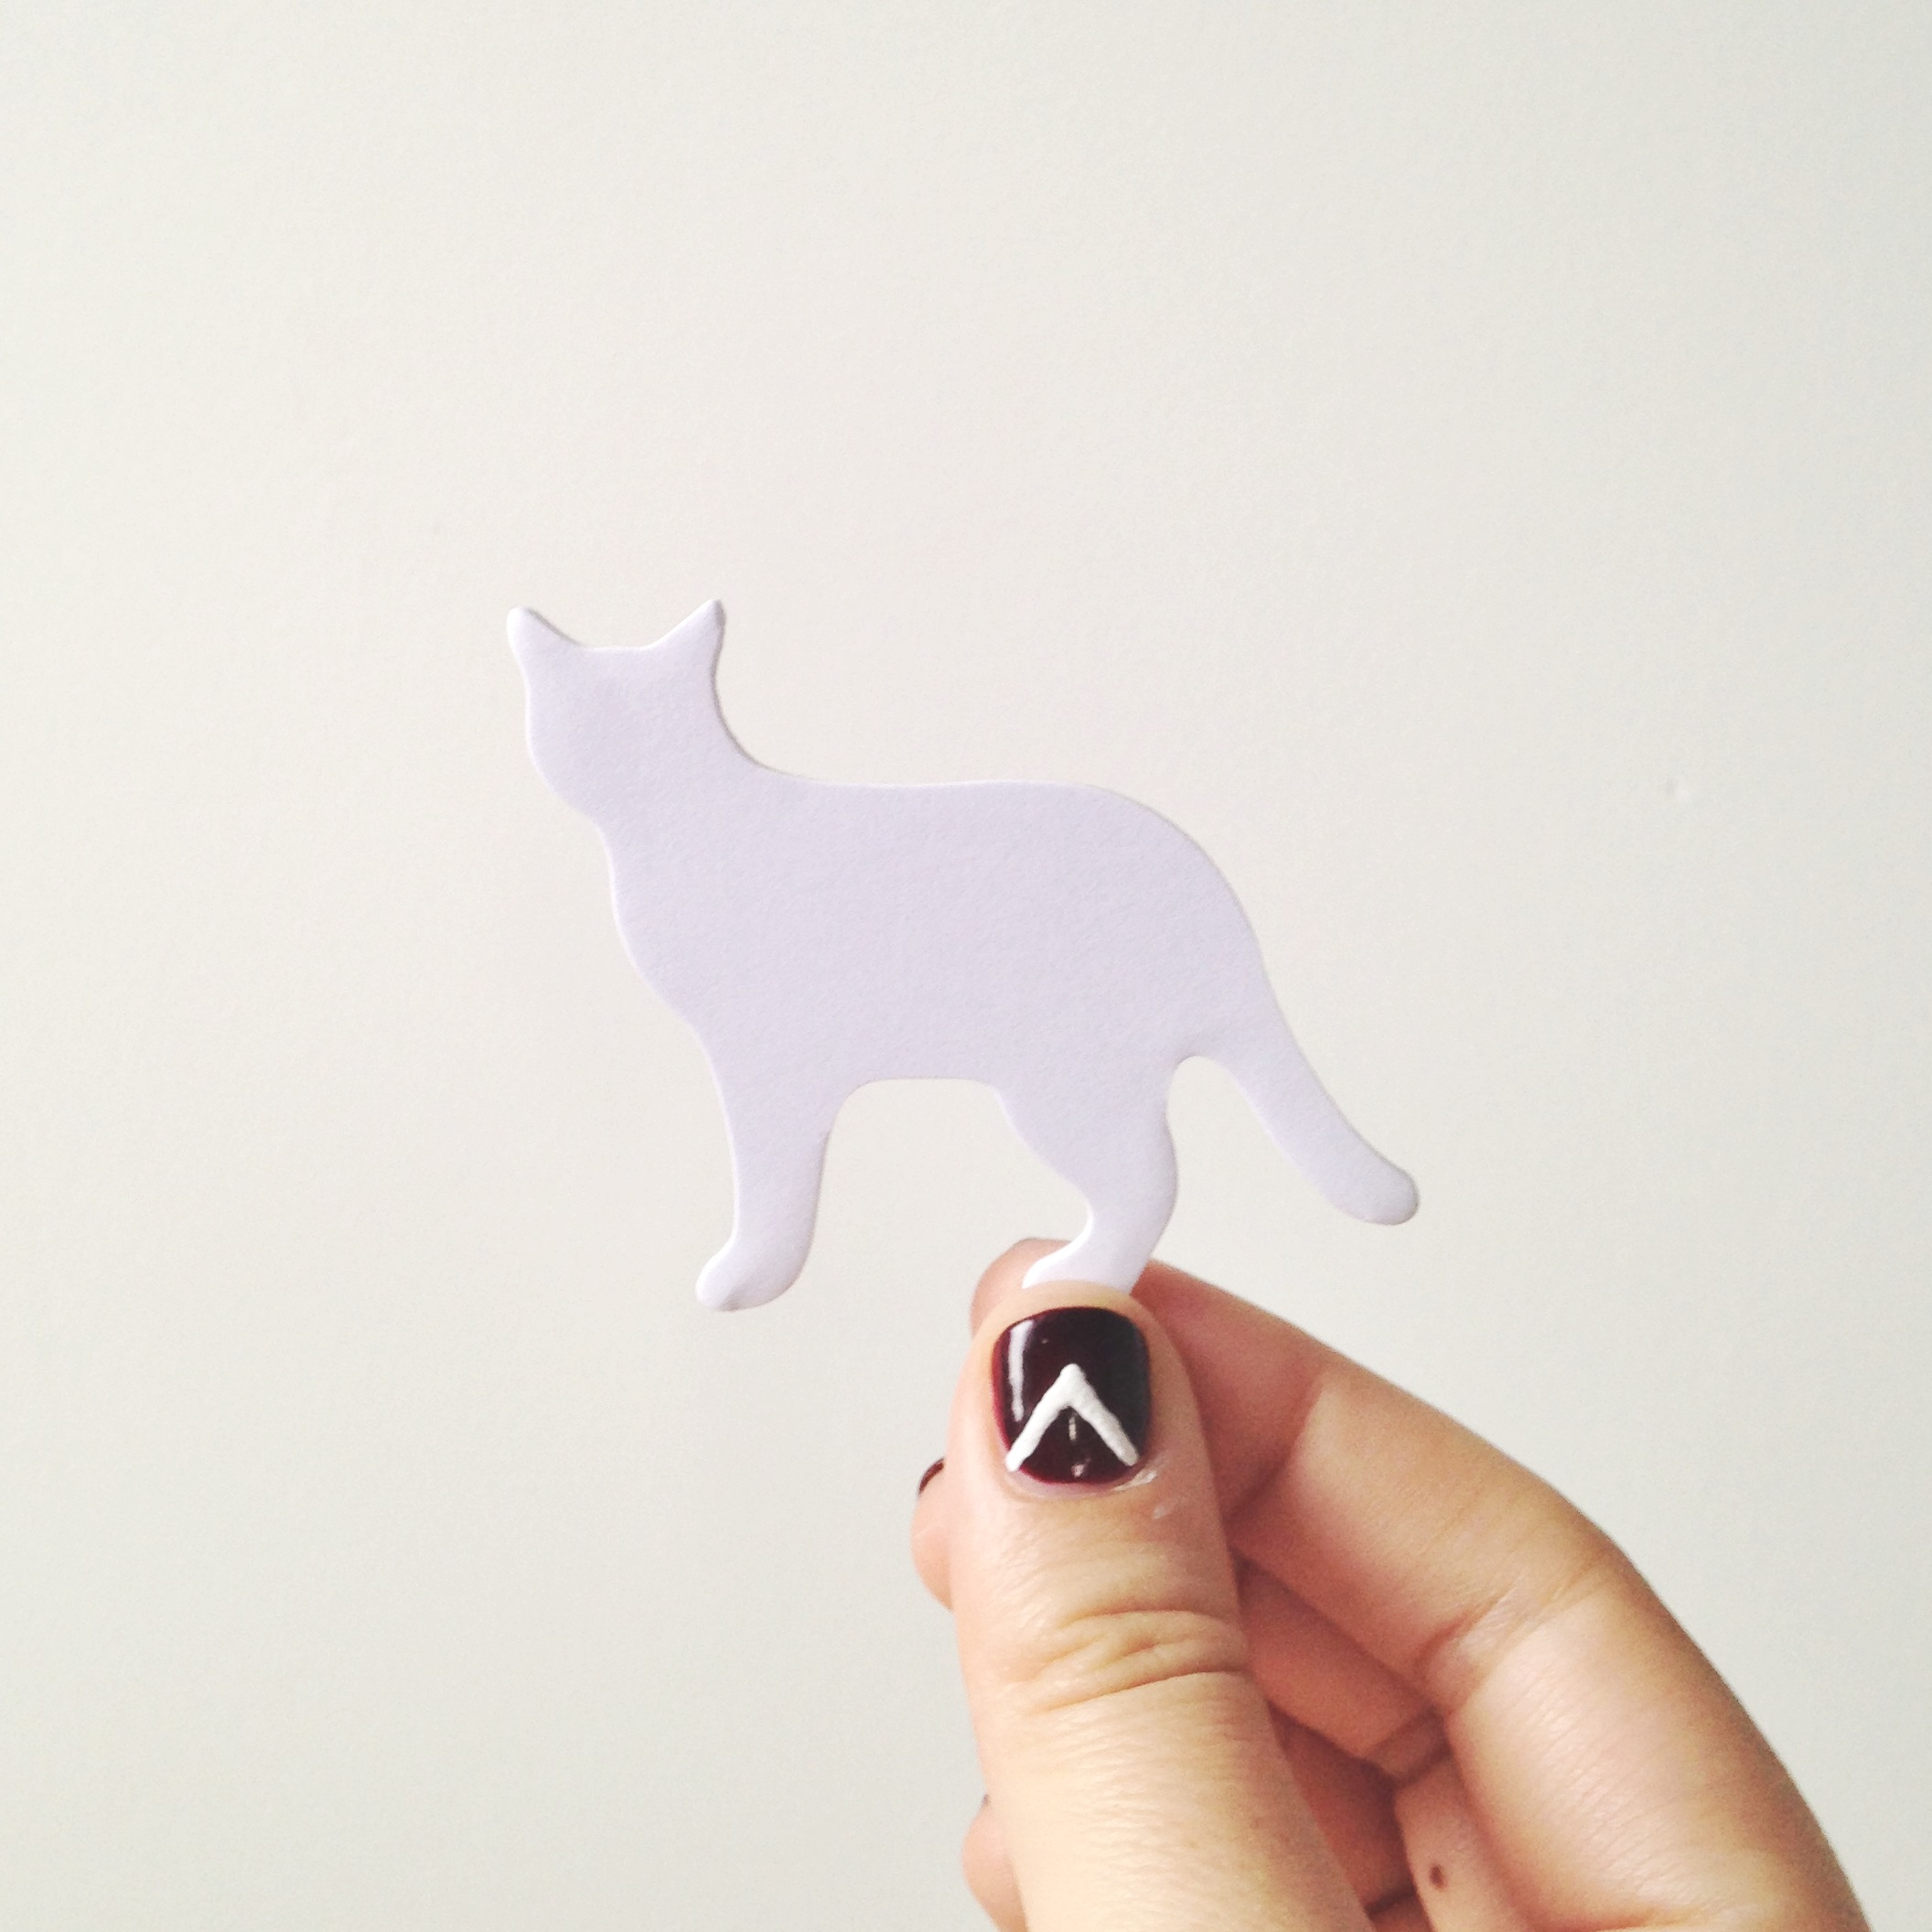 4//. these awesome kitty 'sticky notes' from the awesome Matt - they were a gift from his year  in Japan {super jelly}.